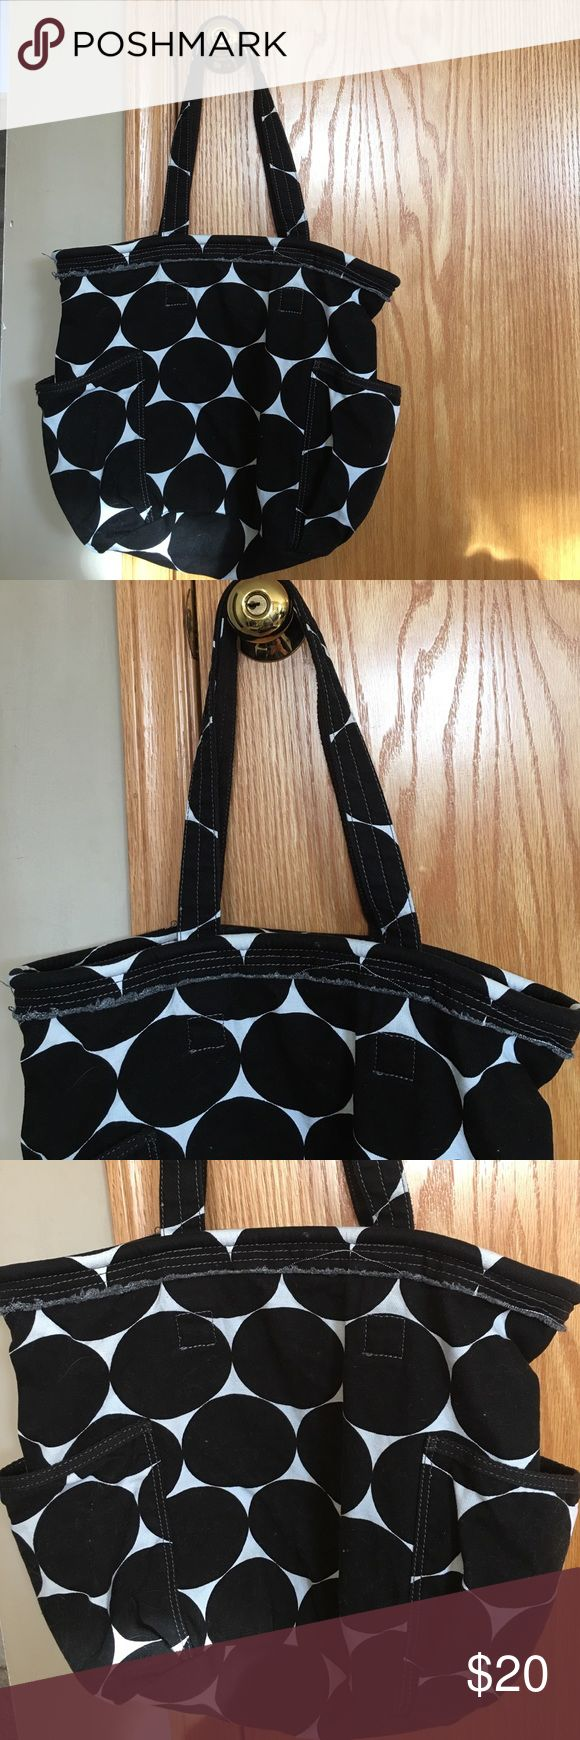 Thirty One Retro Metro Bag Thirty One retro metro bag. Black and white polka dot pattern. Used with lots life left. Description in photo 4 thirty one Bags Totes